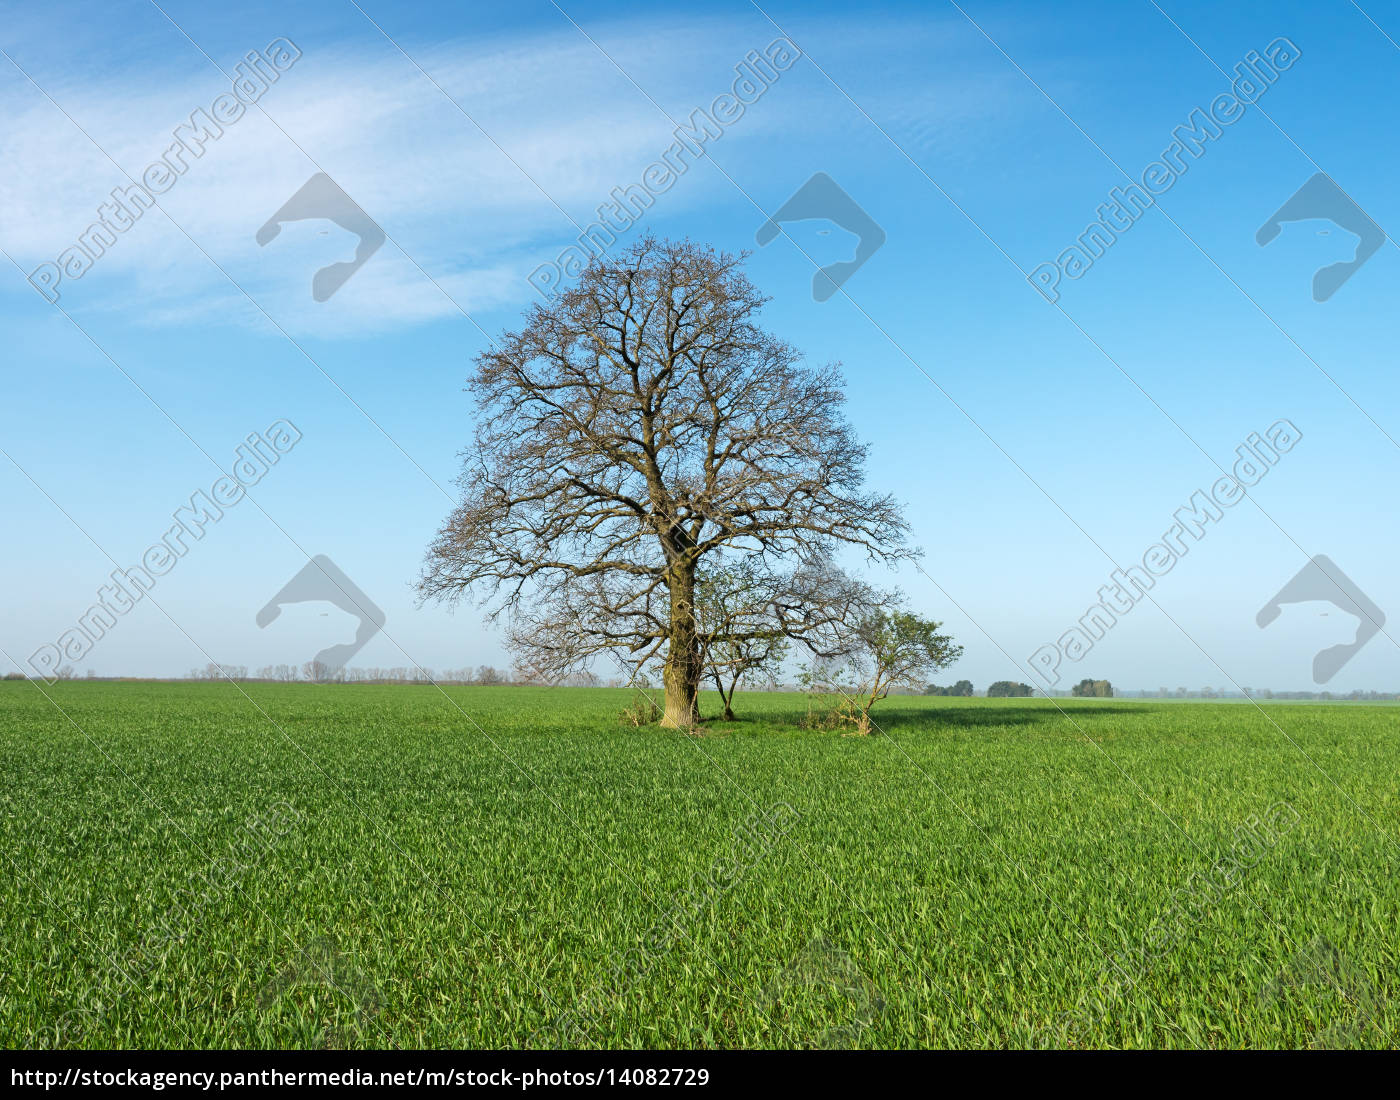 tree, agriculture, farming, field, oak, spring - 14082729